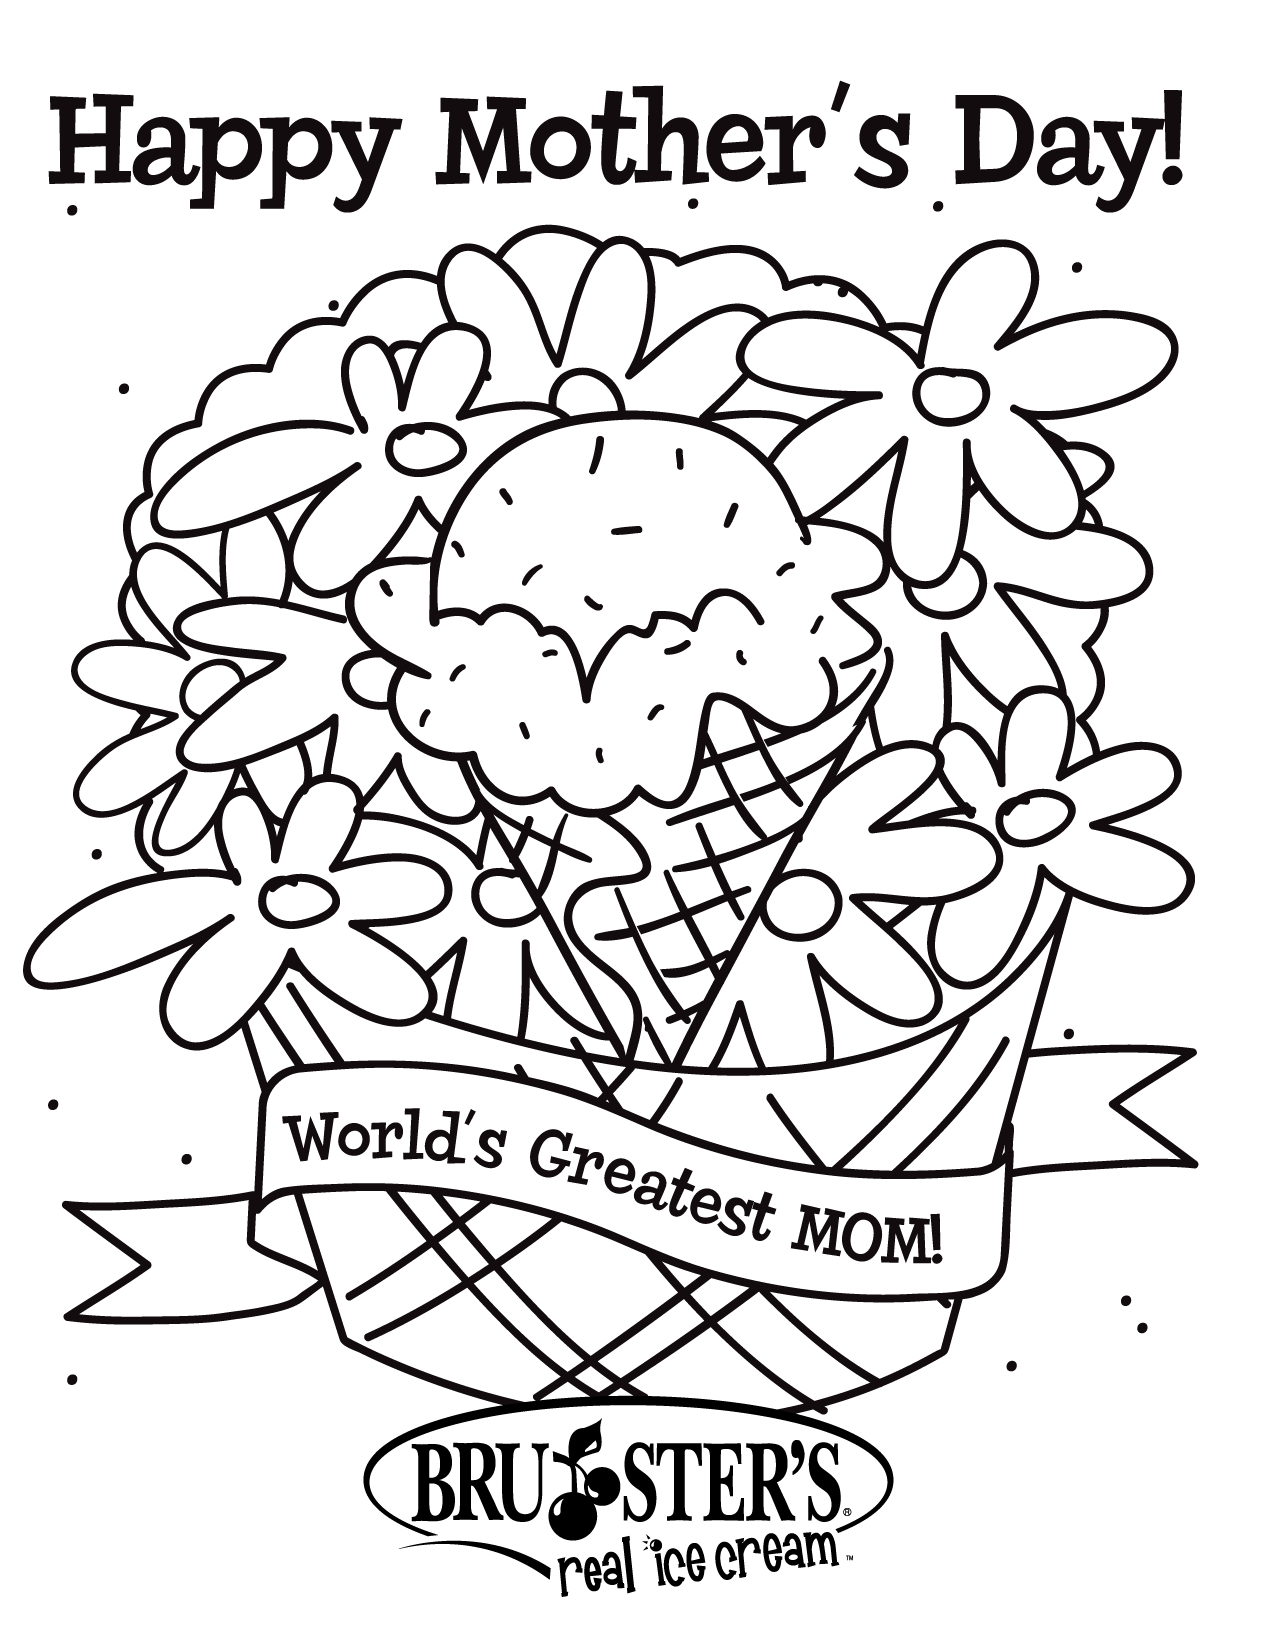 coloring pages mom and kids - photo#34